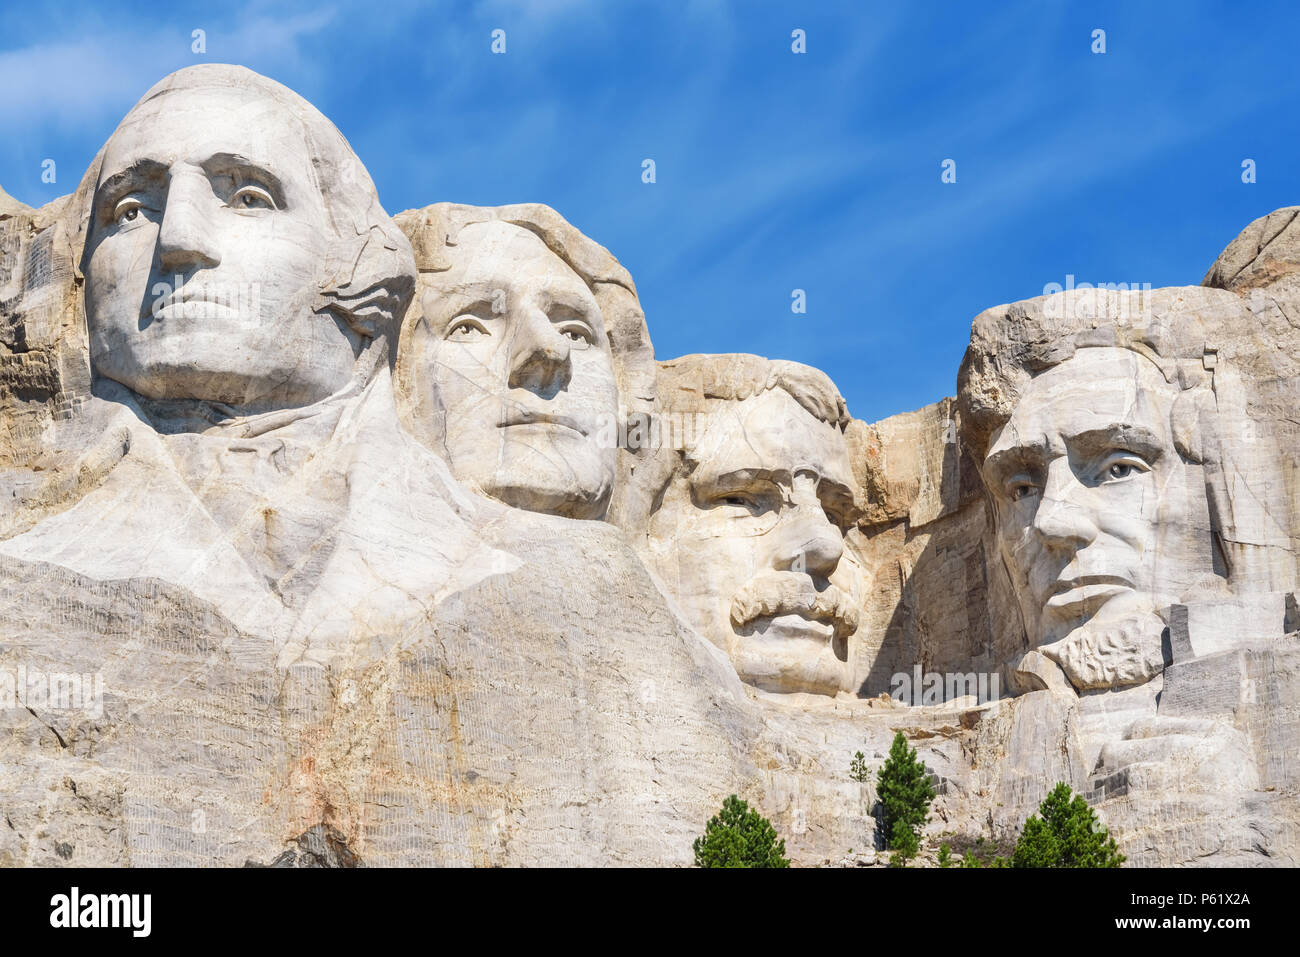 Closeup of presidential sculpture at Mount Rushmore national memorial, USA. Blue sky background. Stock Photo